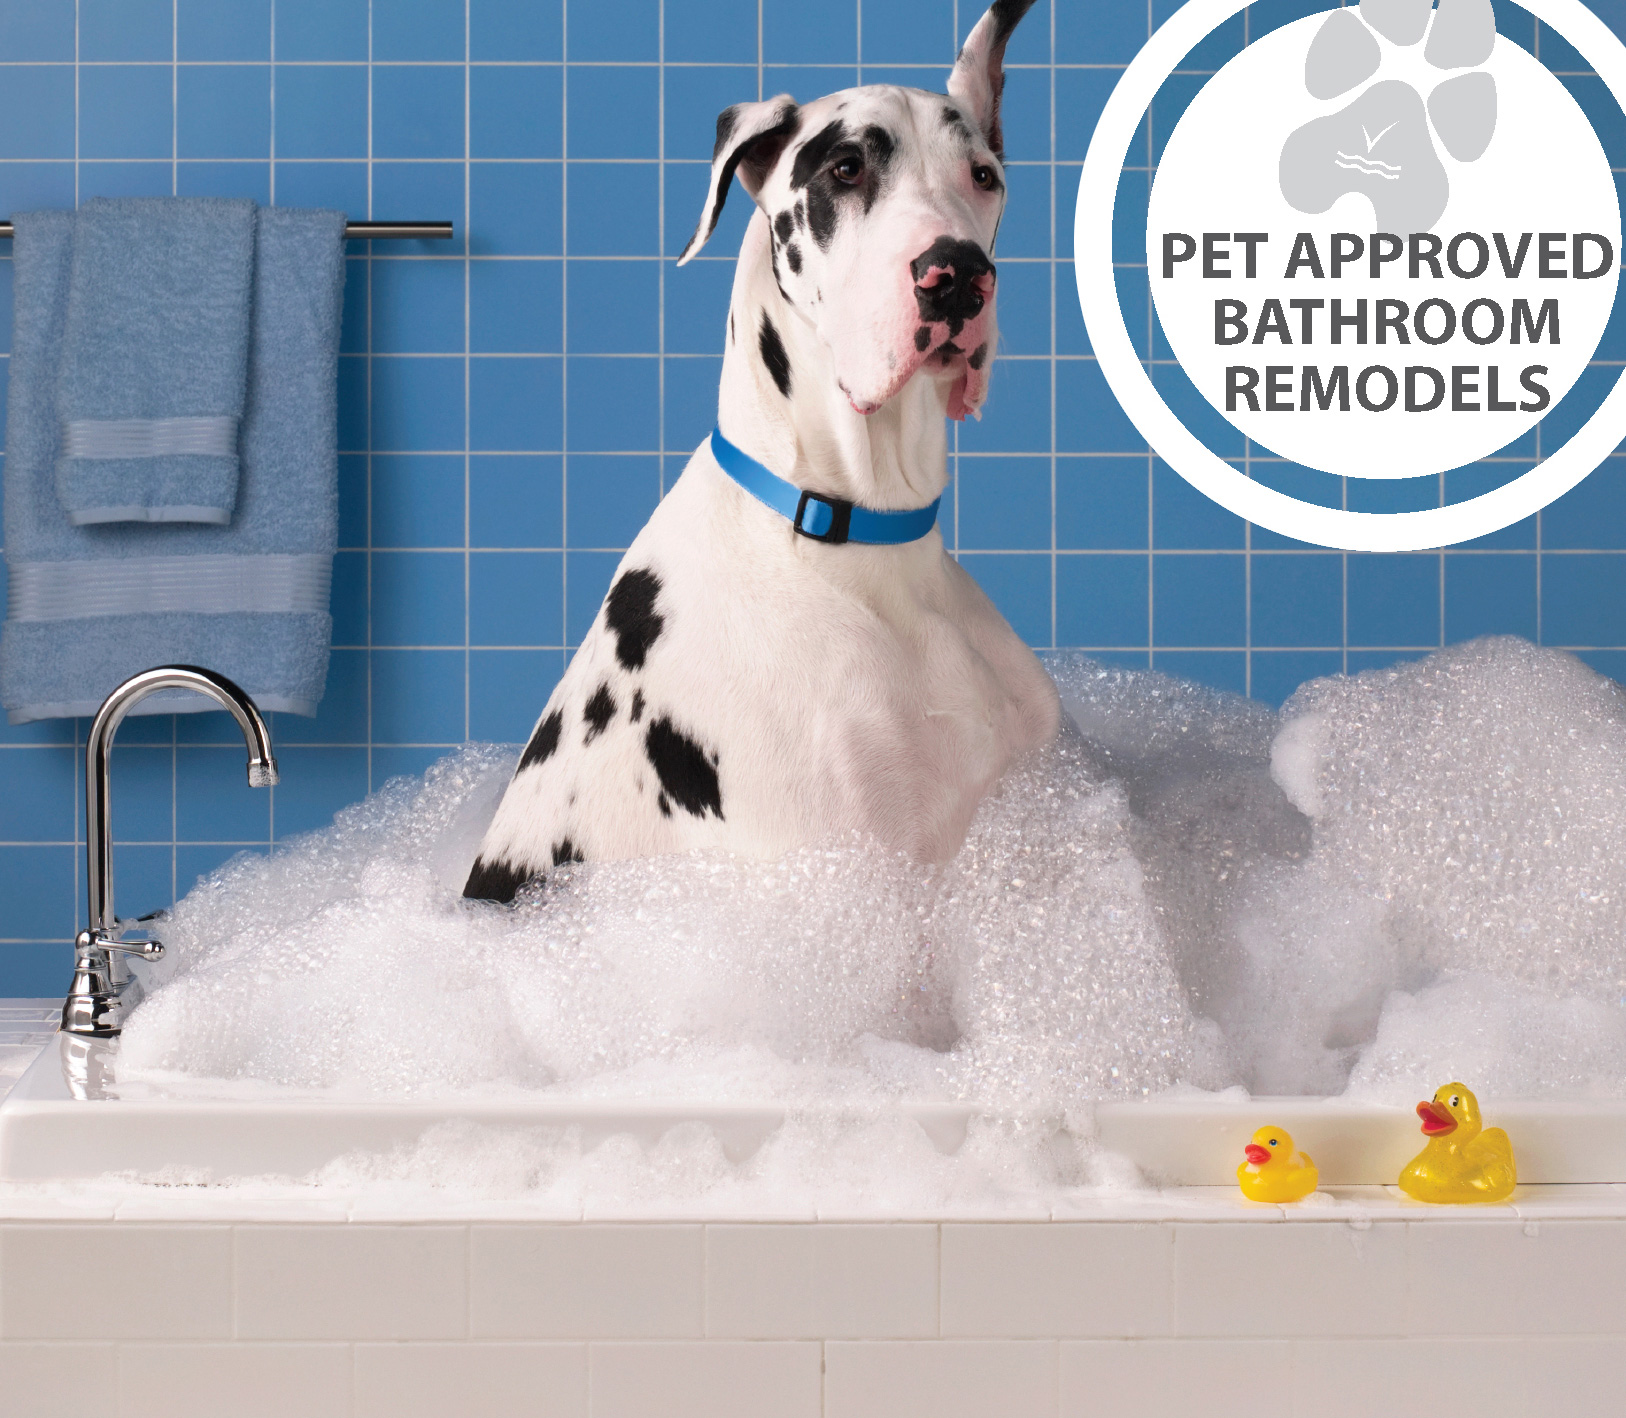 Pet Approved Remodeling